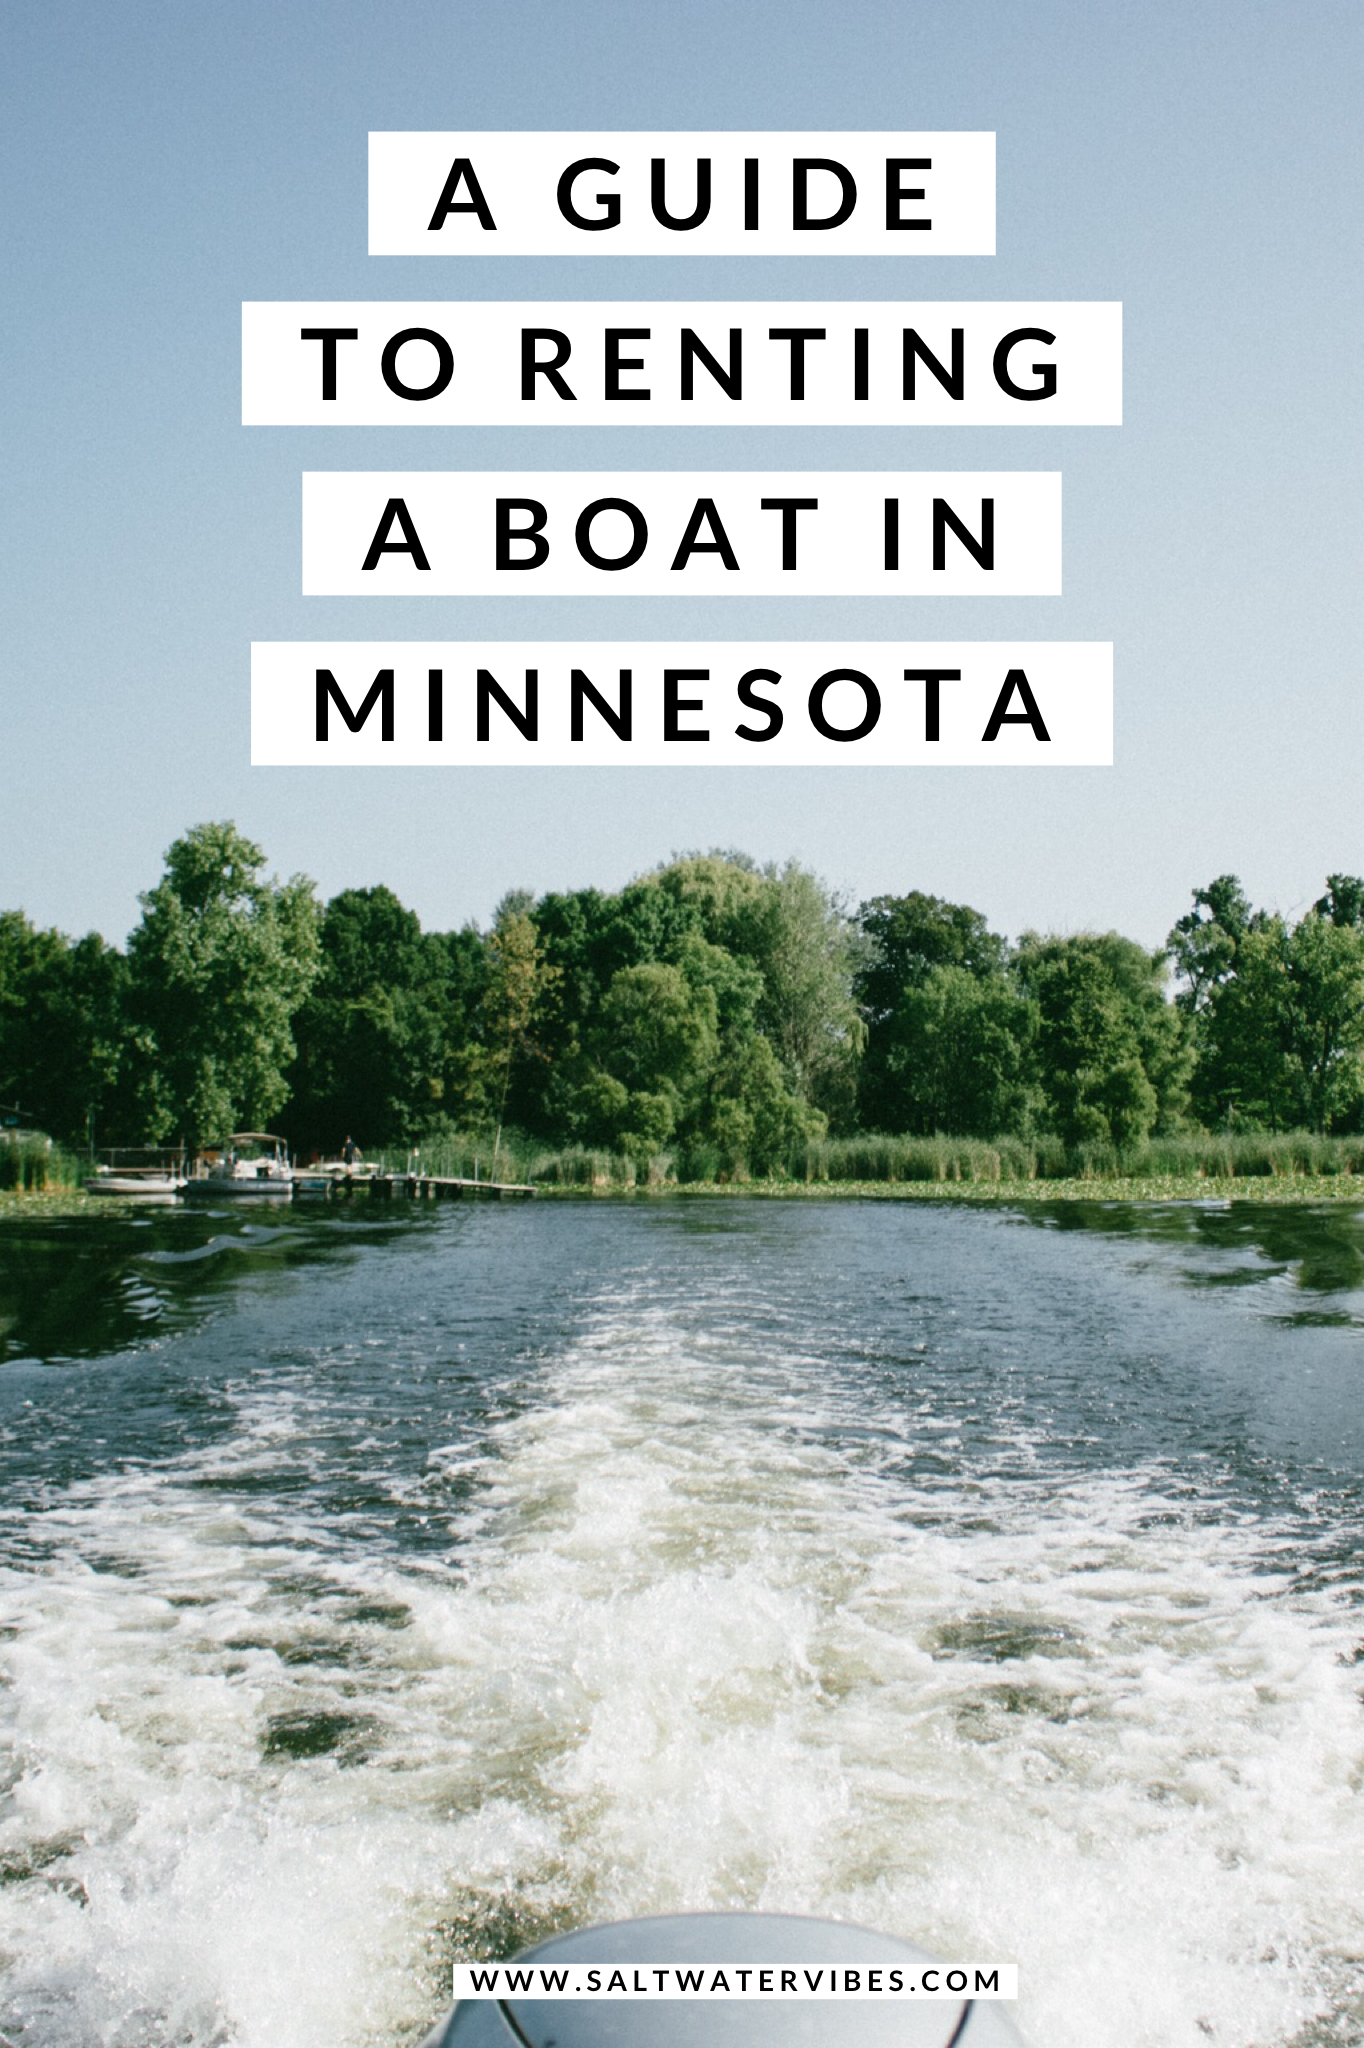 Boating With Bald Eagle Boat Rental Minnesota | SaltWaterVibes